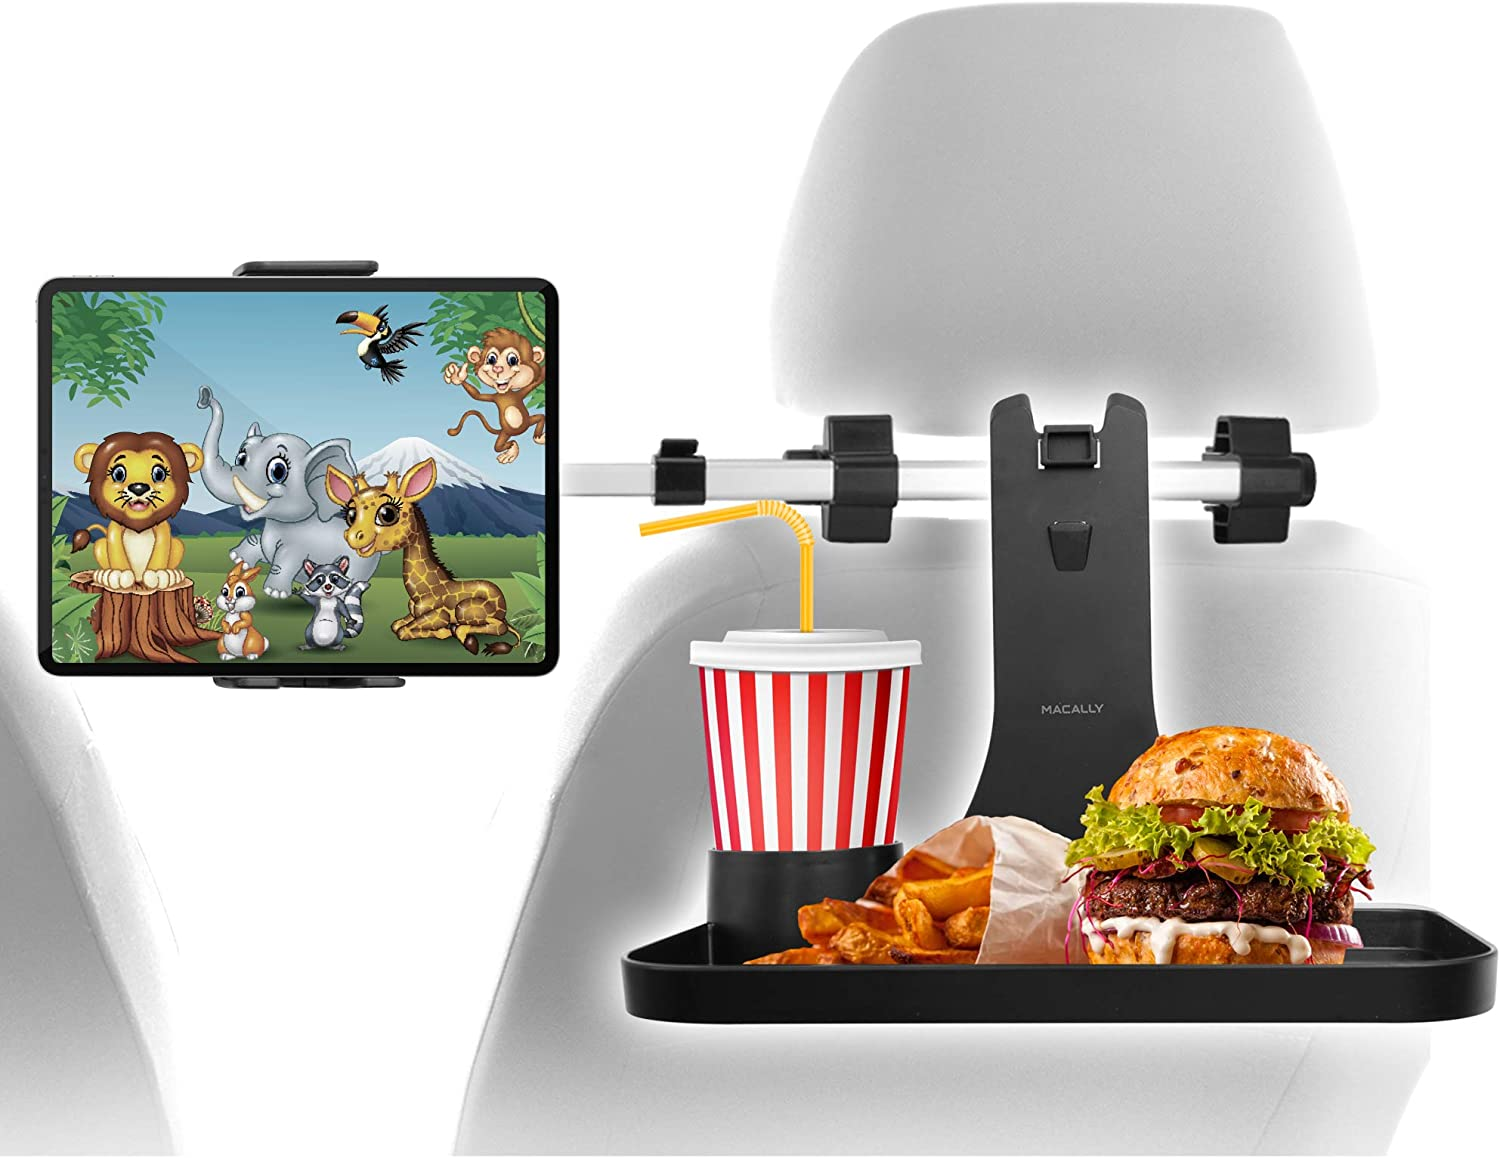 Macally Headrest Tablet Holder for Car with Table - Backseat Entertainment and Snacks for Kids - For Devices 4.5-10